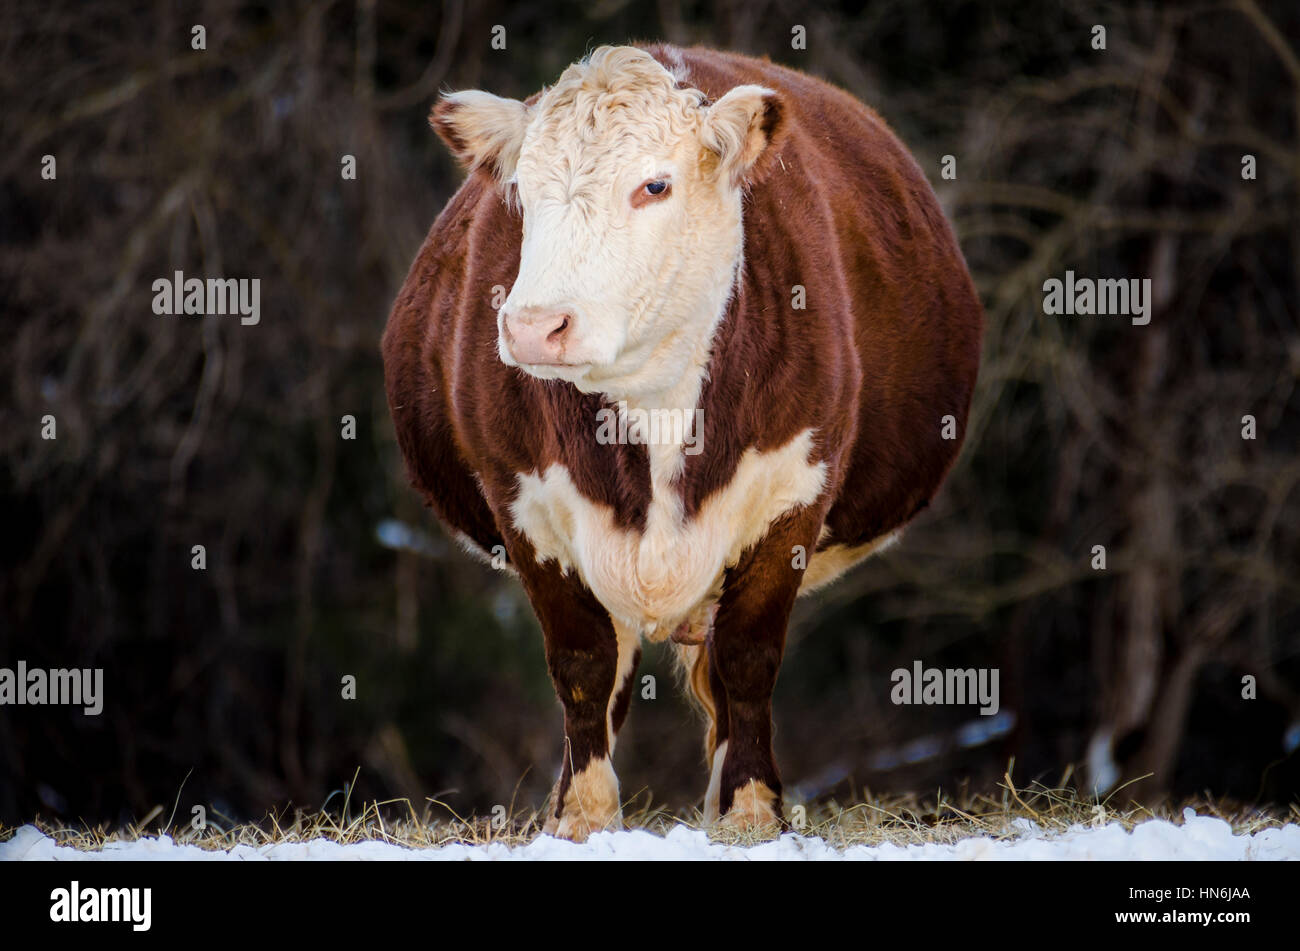 A pregnant, brown and white jersey cow standing in snow - Stock Image